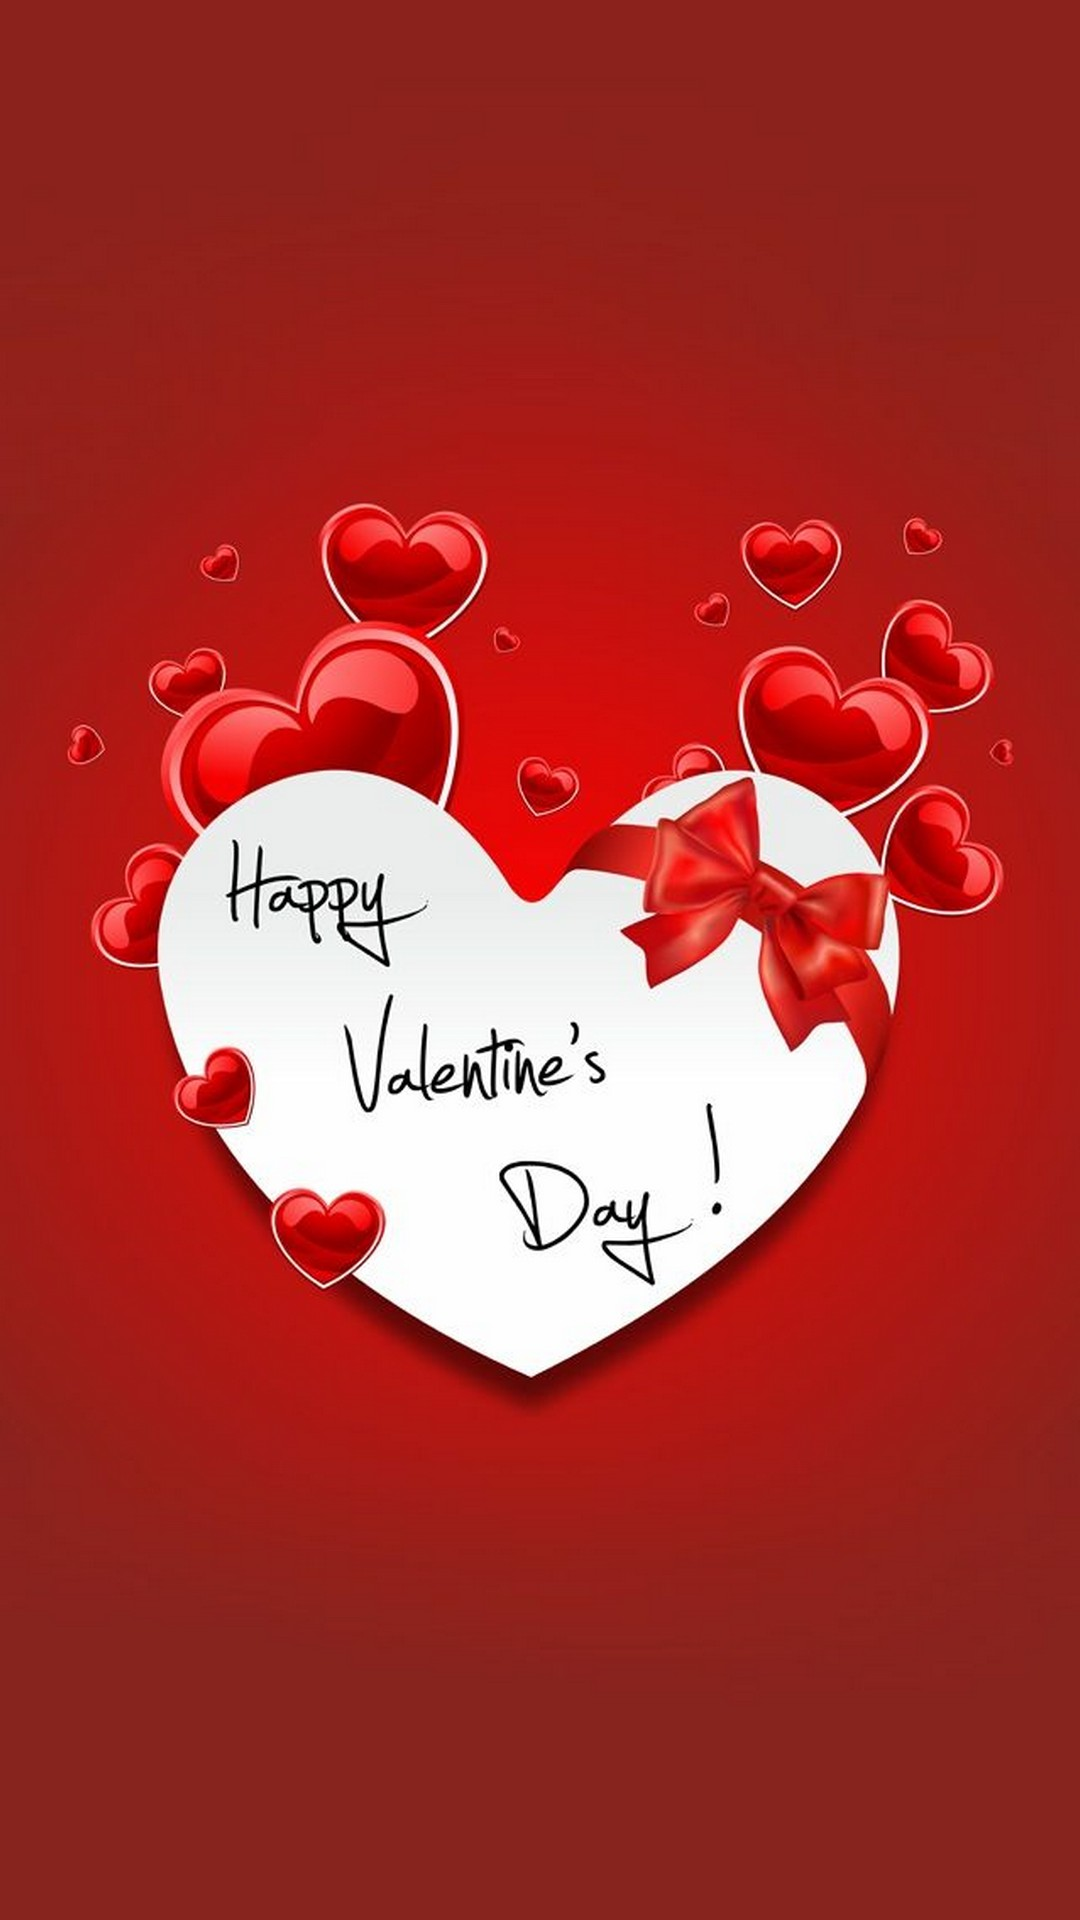 Happy Valentines Day iPhone Wallpapers